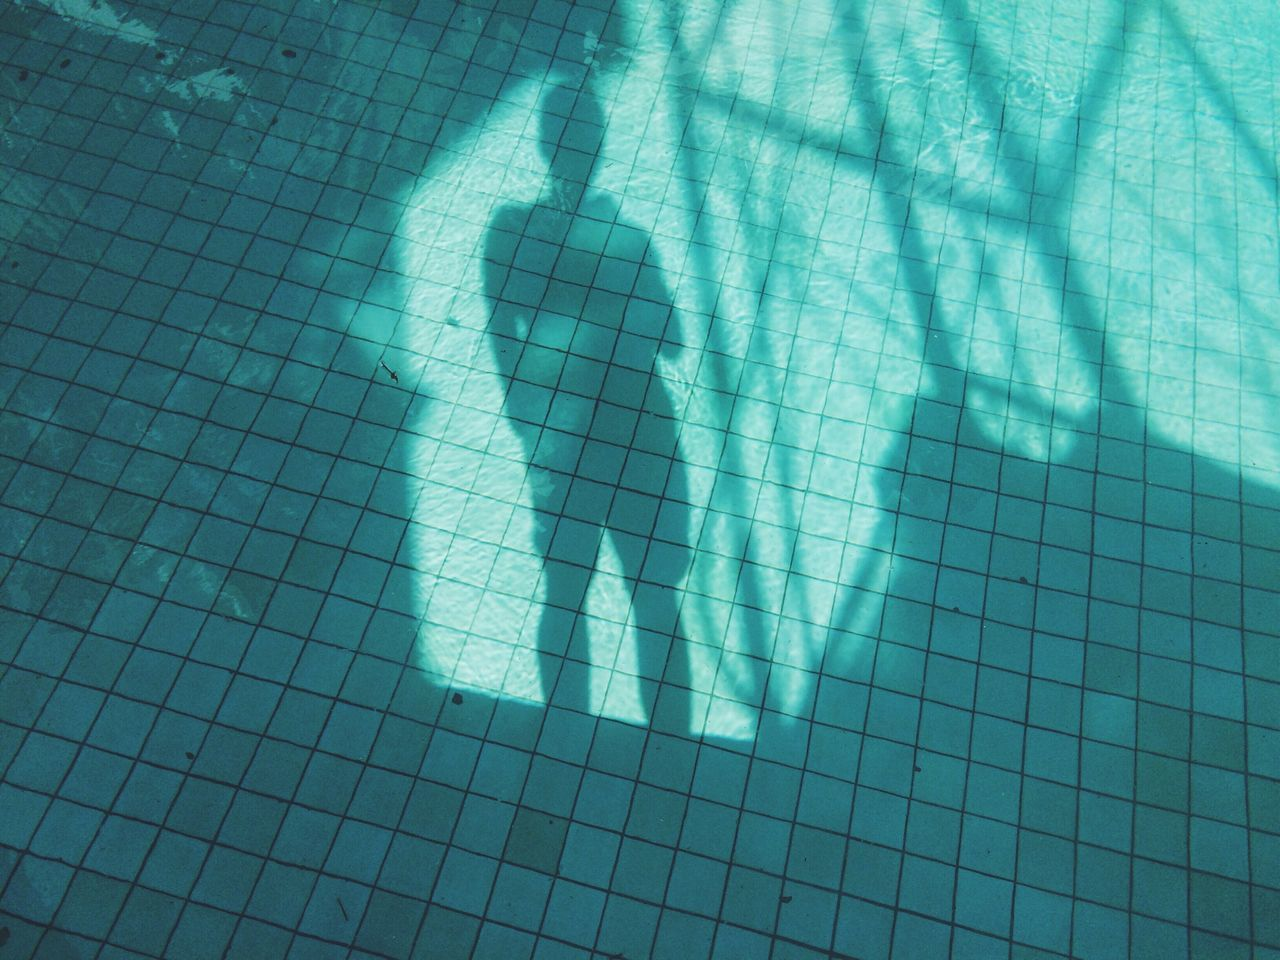 Shadow of man in swimming pool